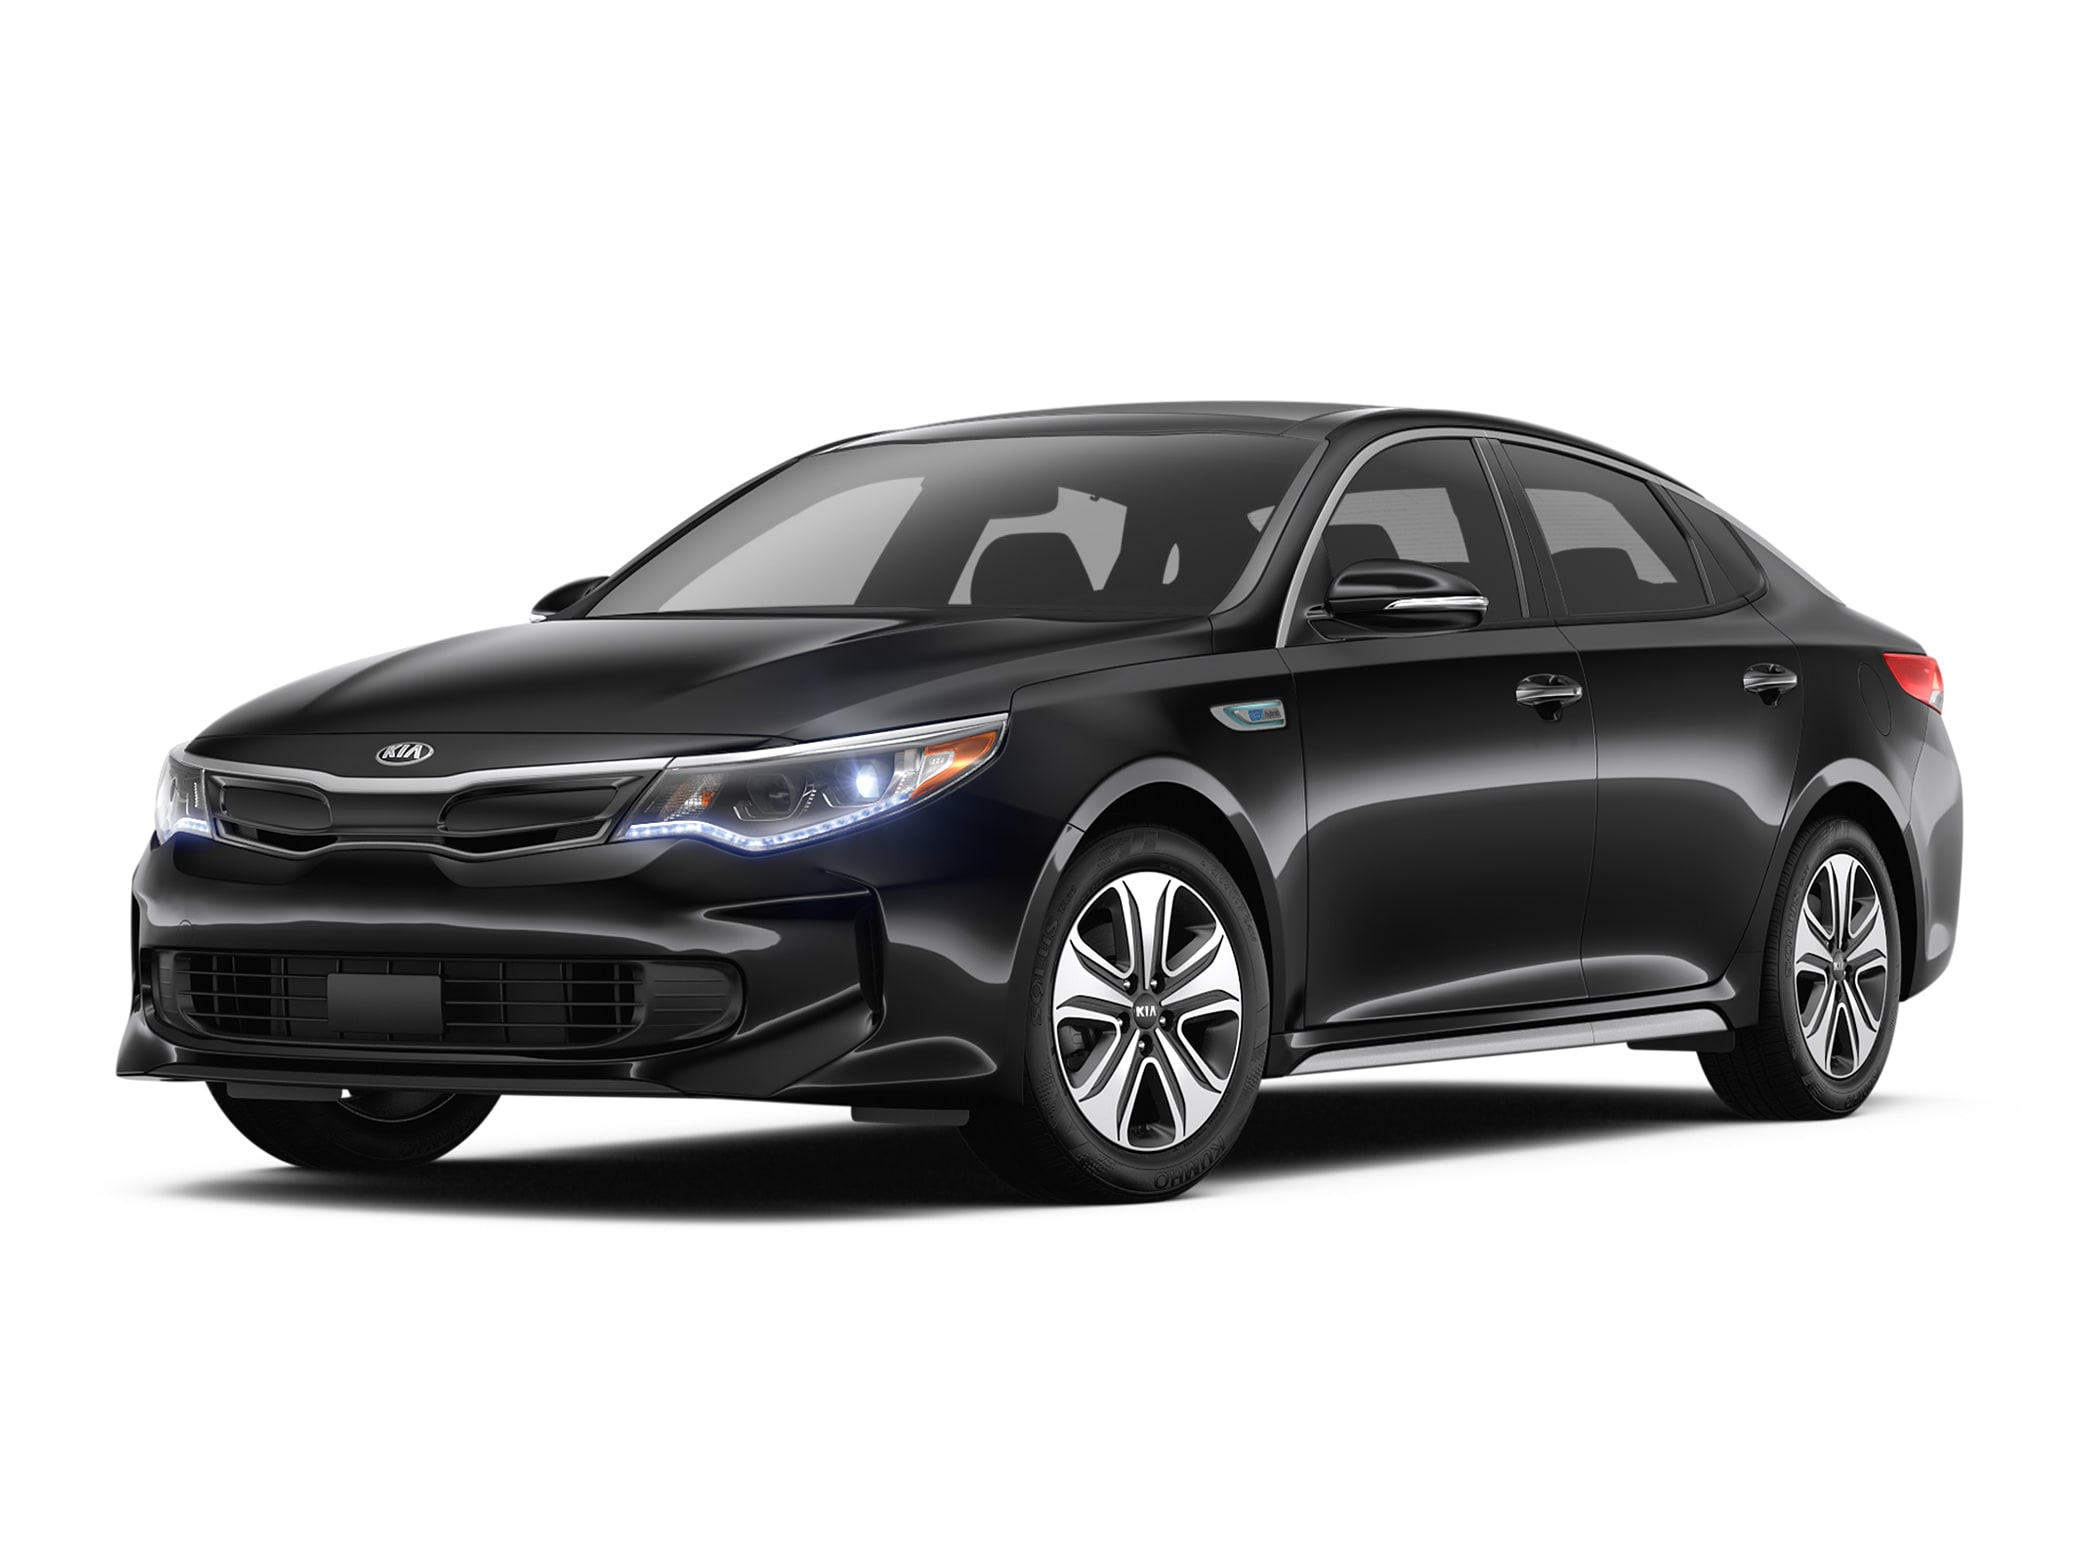 2019 Kia Optima Hybrid Sedan Aurora Black